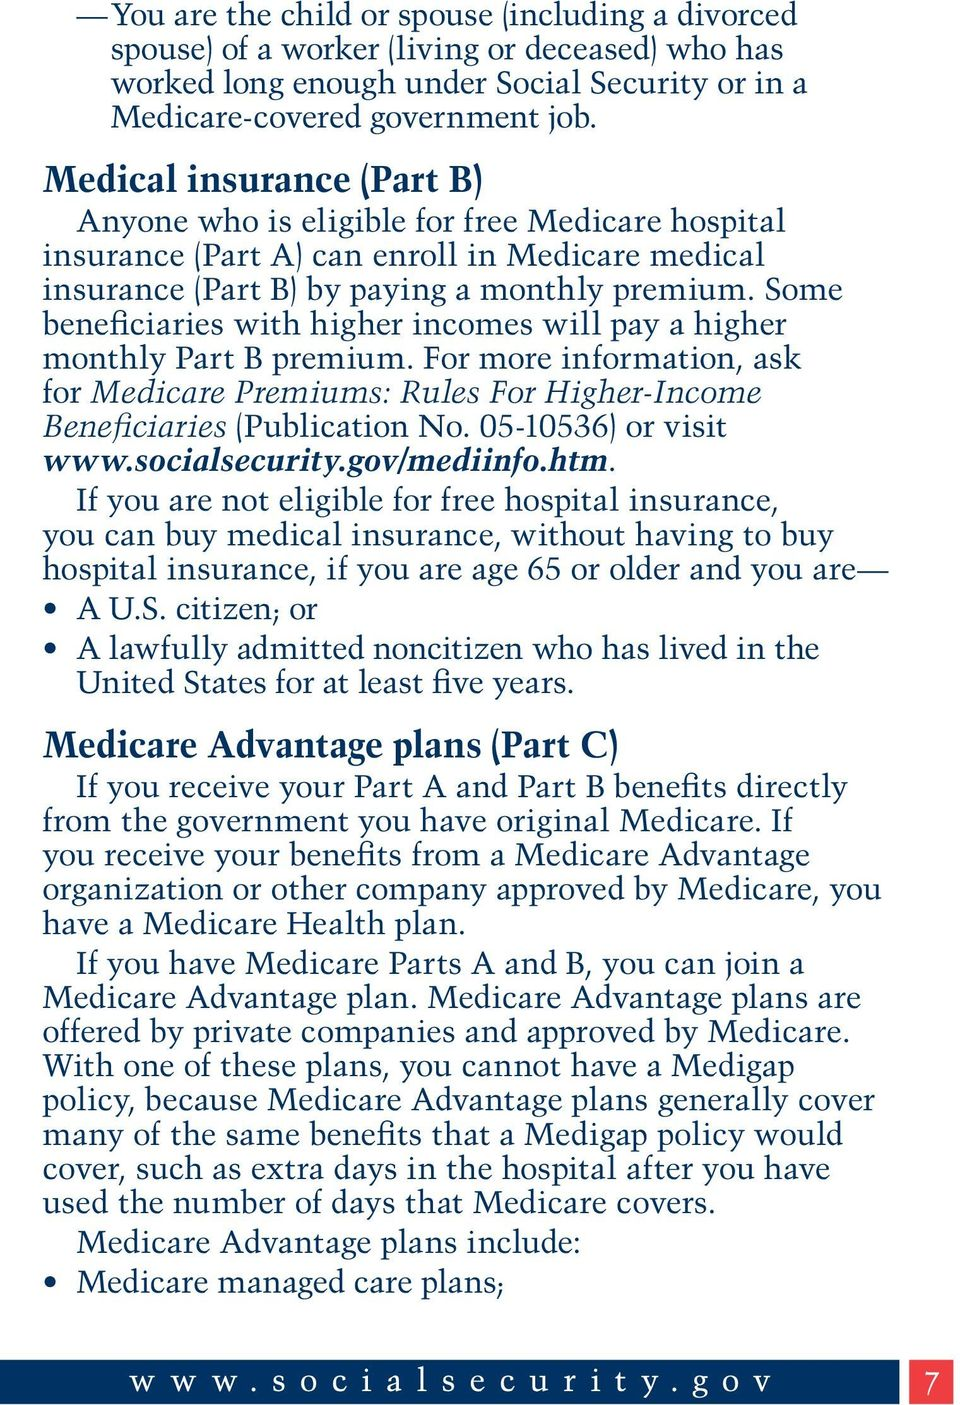 Some beneficiaries with higher incomes will pay a higher monthly Part B premium. For more information, ask for Medicare Premiums: Rules For Higher-Income Beneficiaries (Publication No.